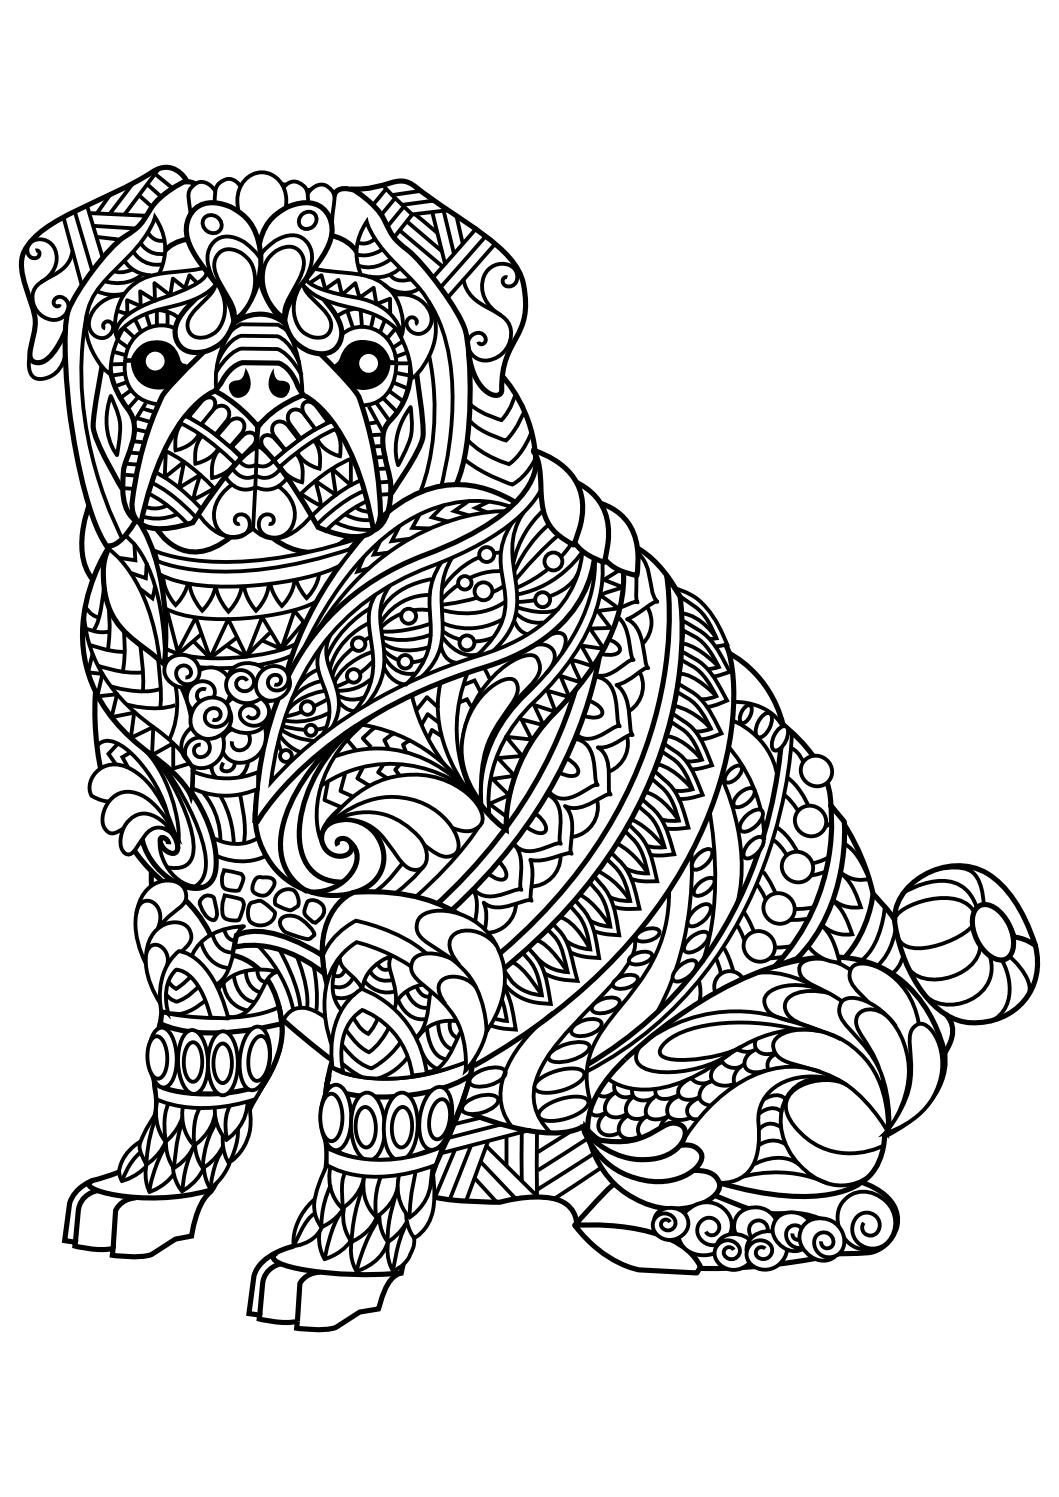 coloring pages pdf # 10